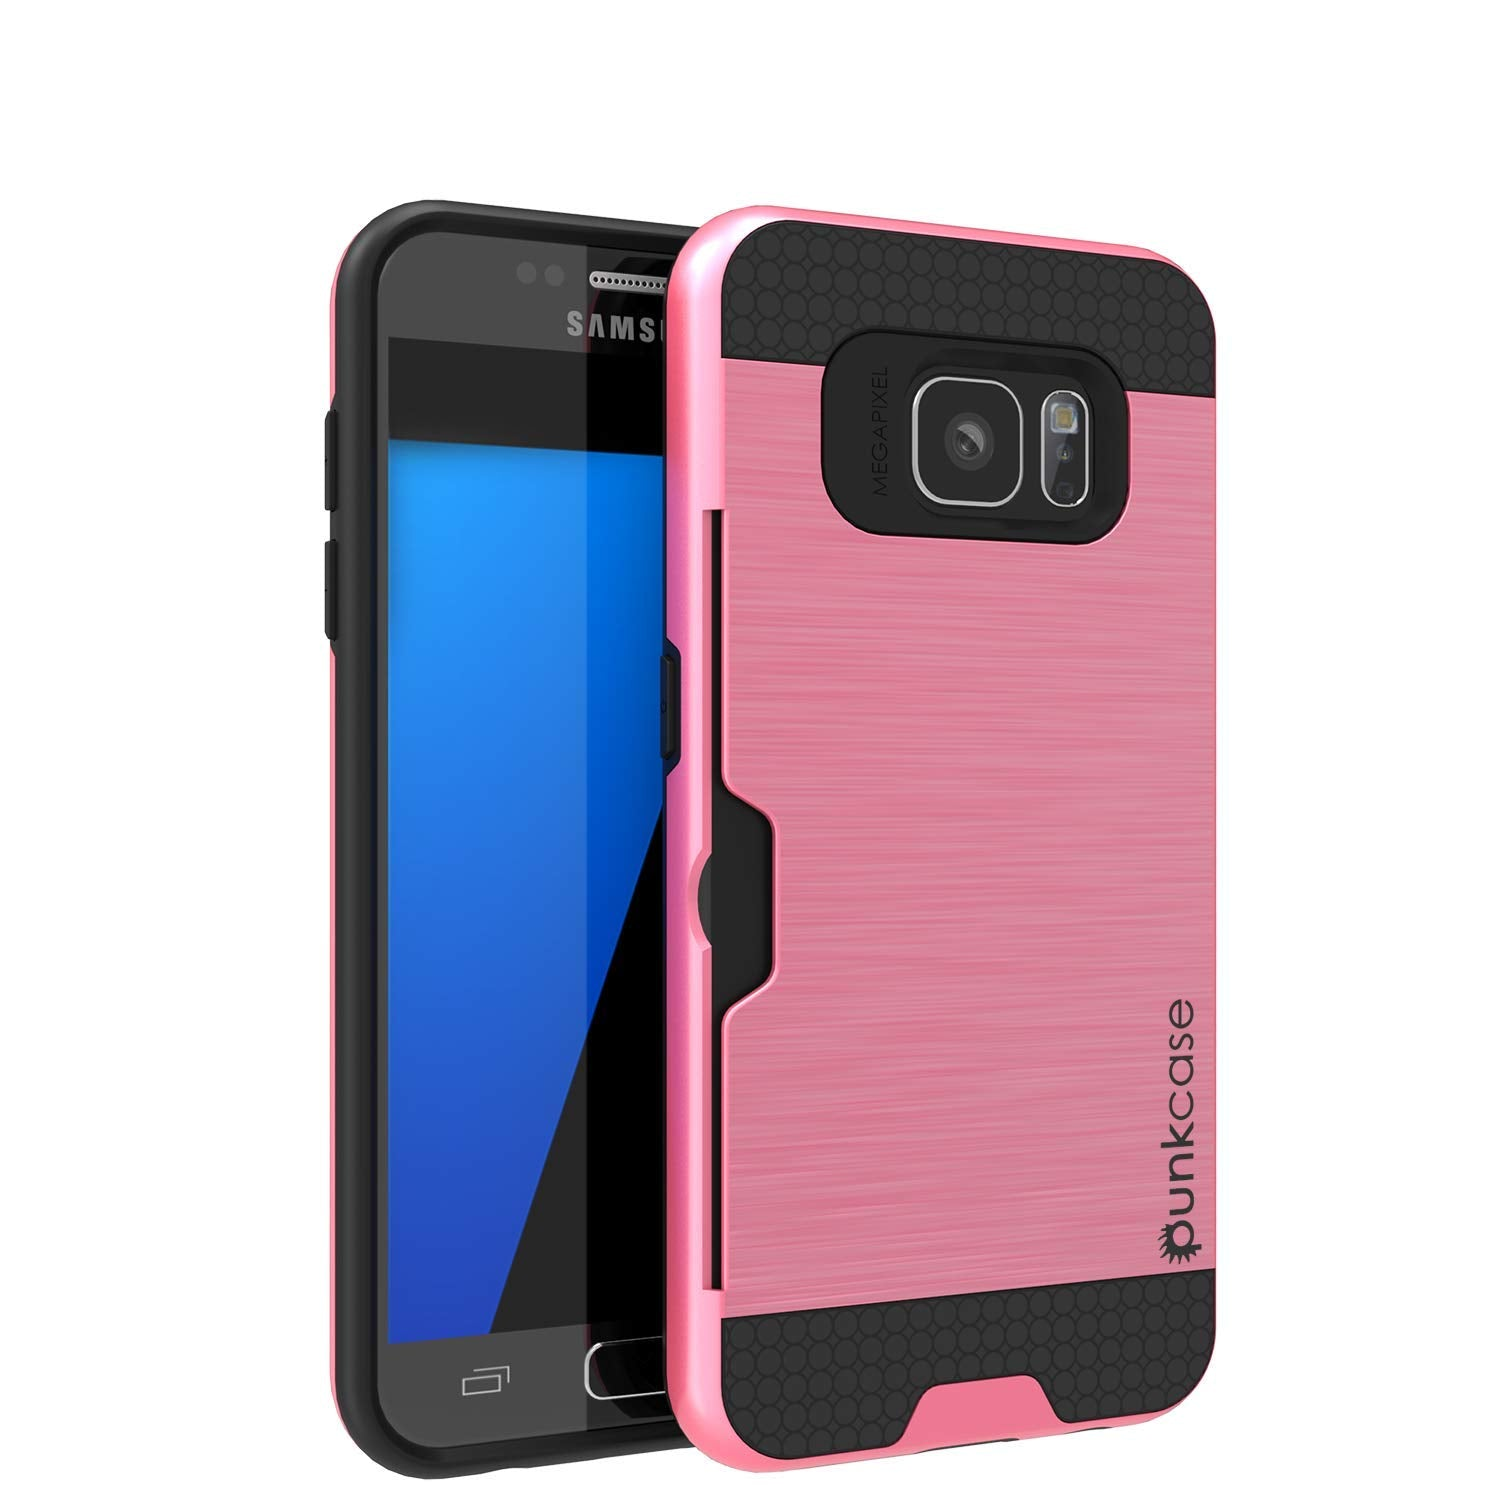 Galaxy S7+ Plus Dual-Layer Ultra Screen Protector Case W/ Card Slot [Pink]